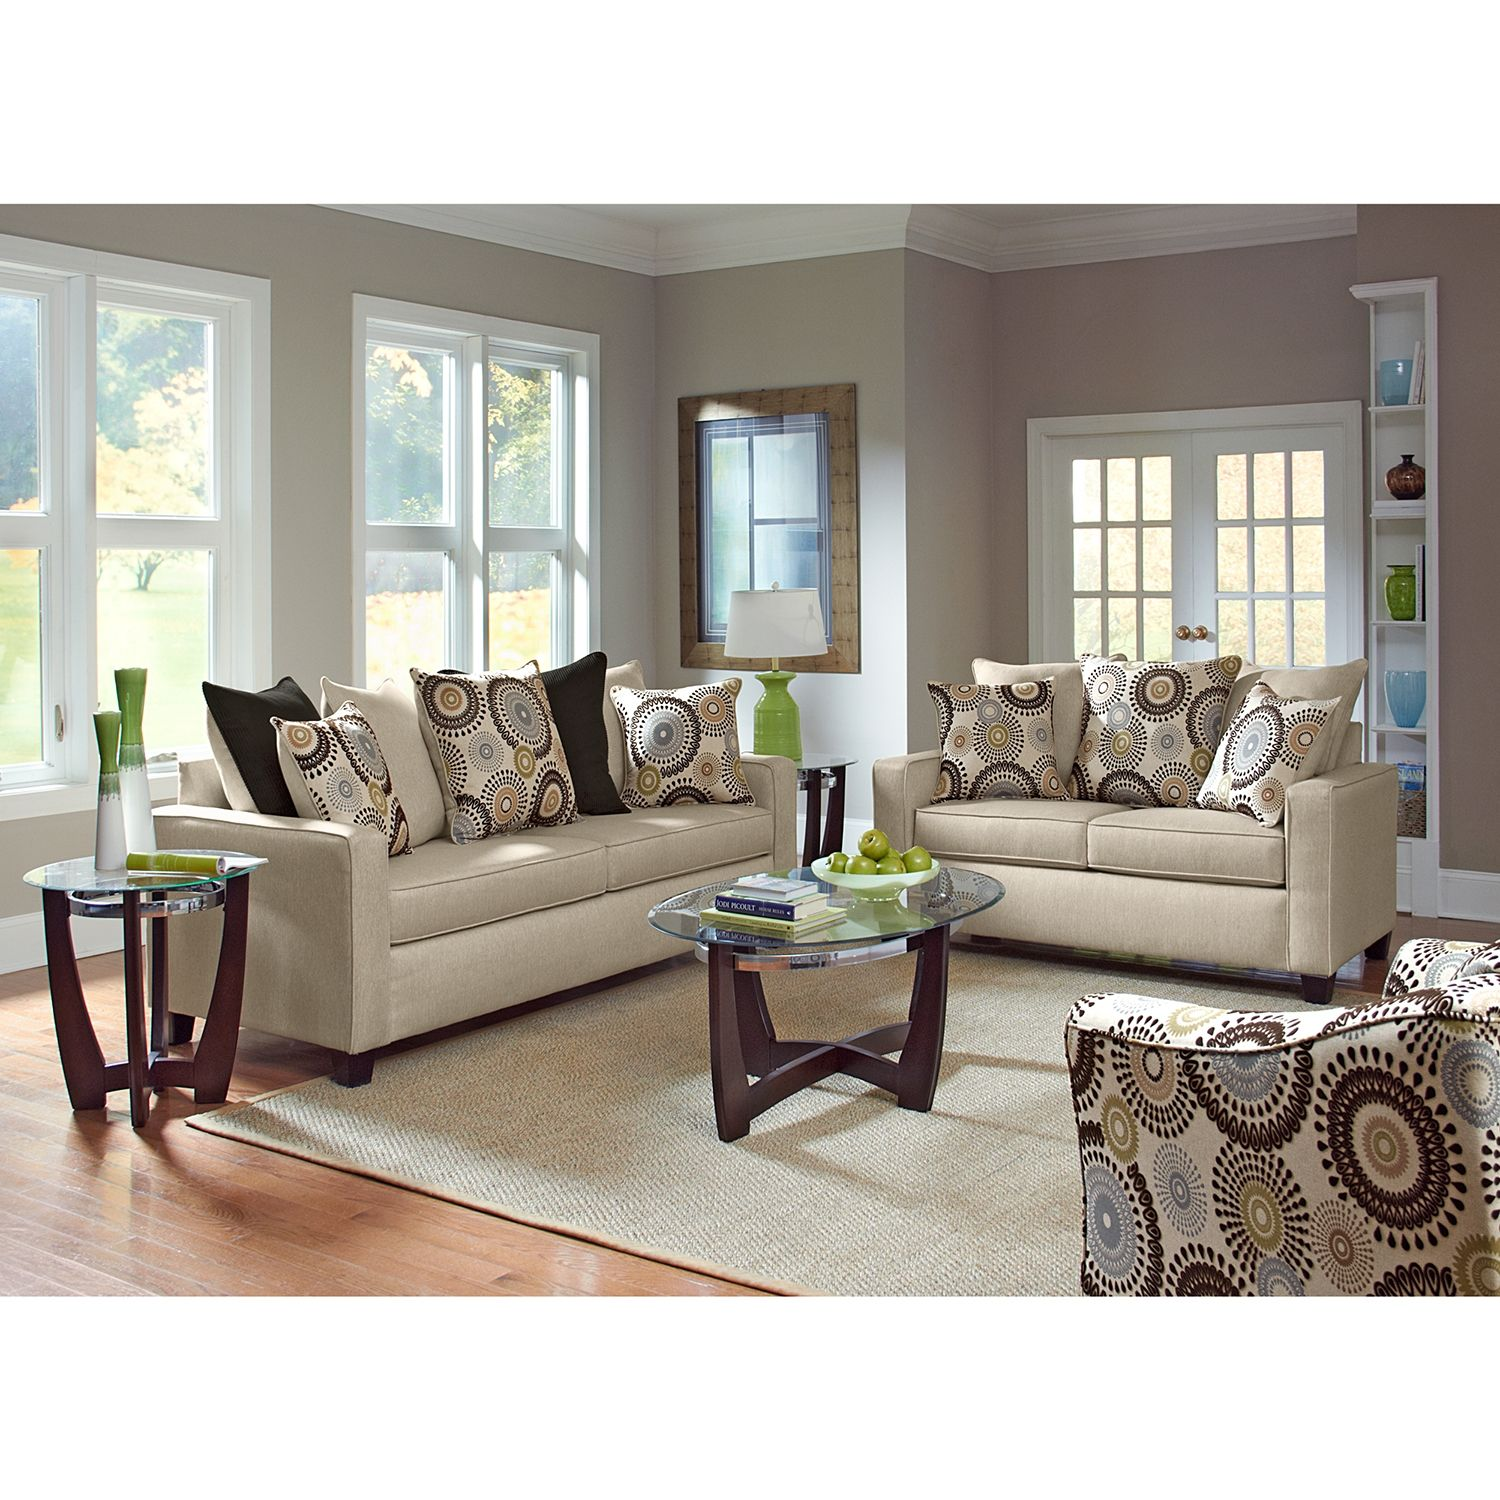 Stoked Loveseat American Signature Furniture Living Room Sets